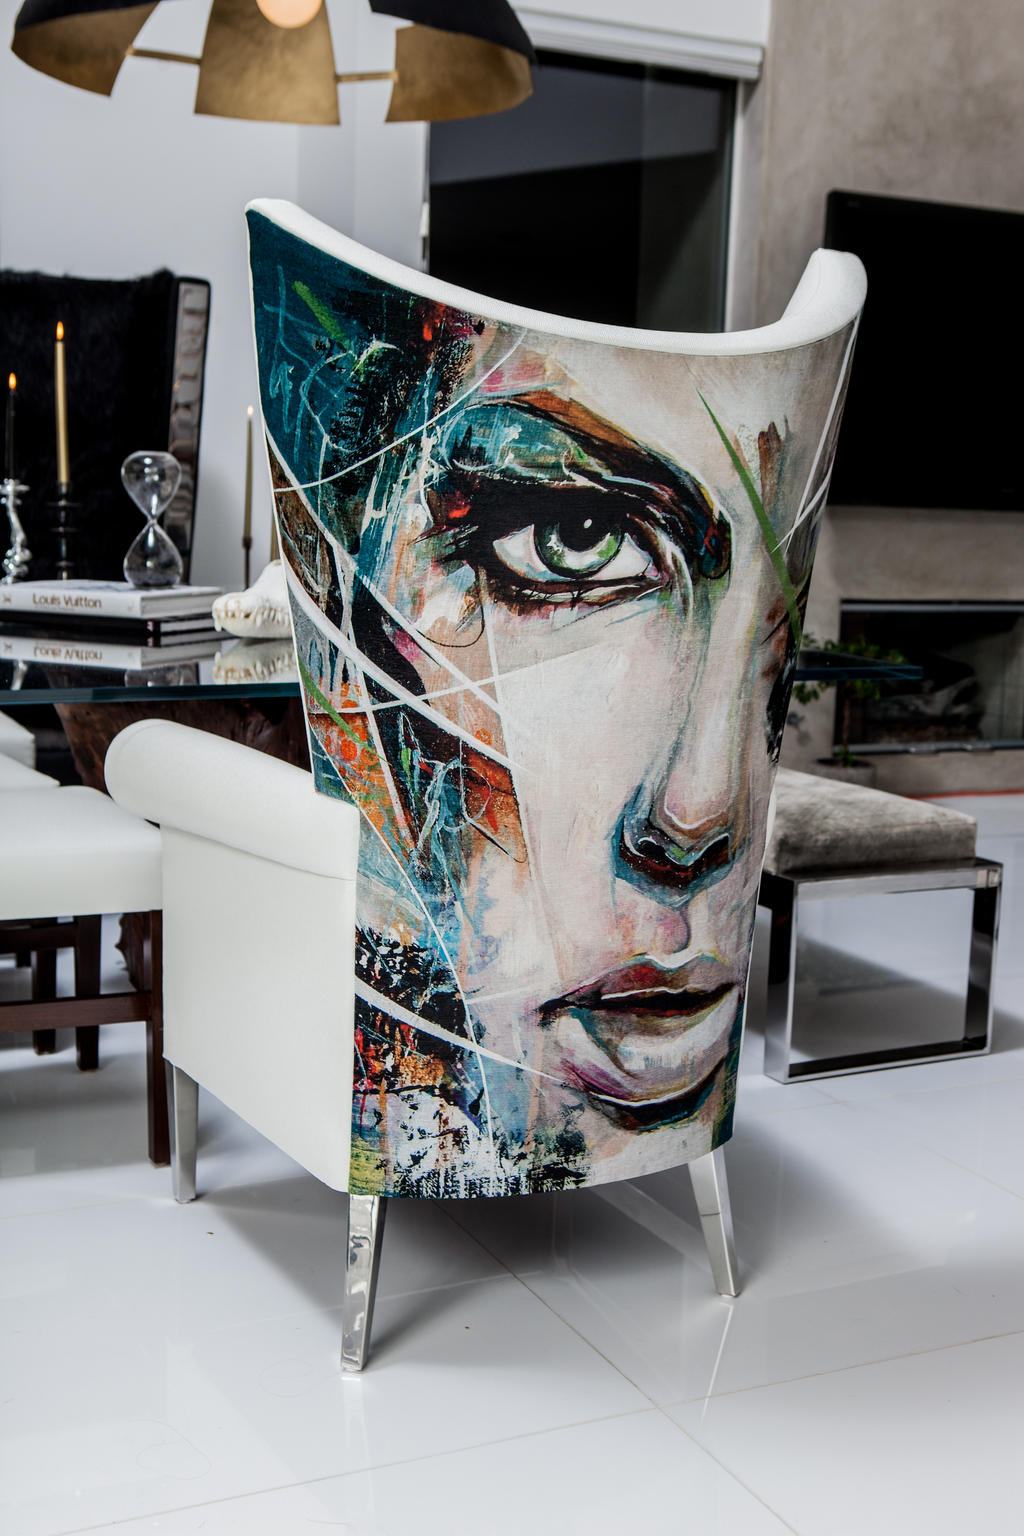 Chair design by ART-BY-DOC